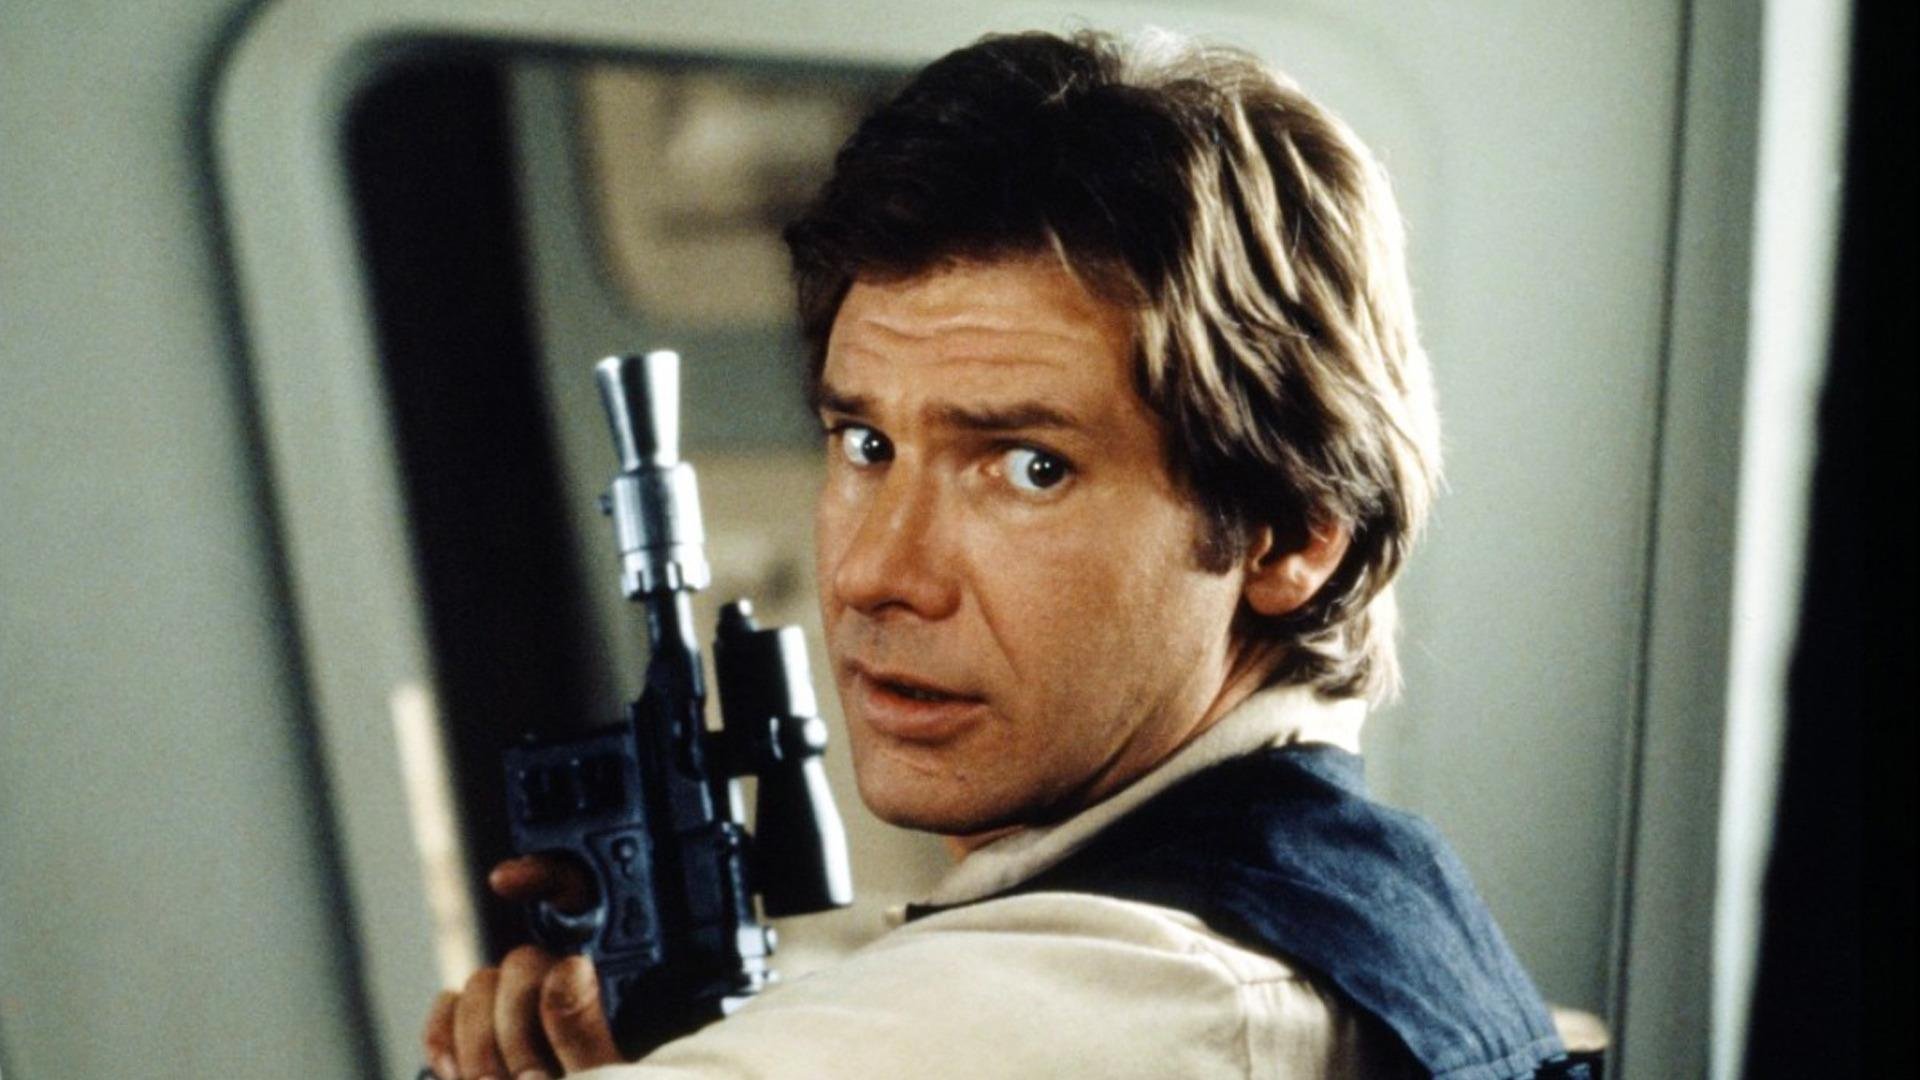 Harrison Ford in estrela Wars: Return of the Jedi